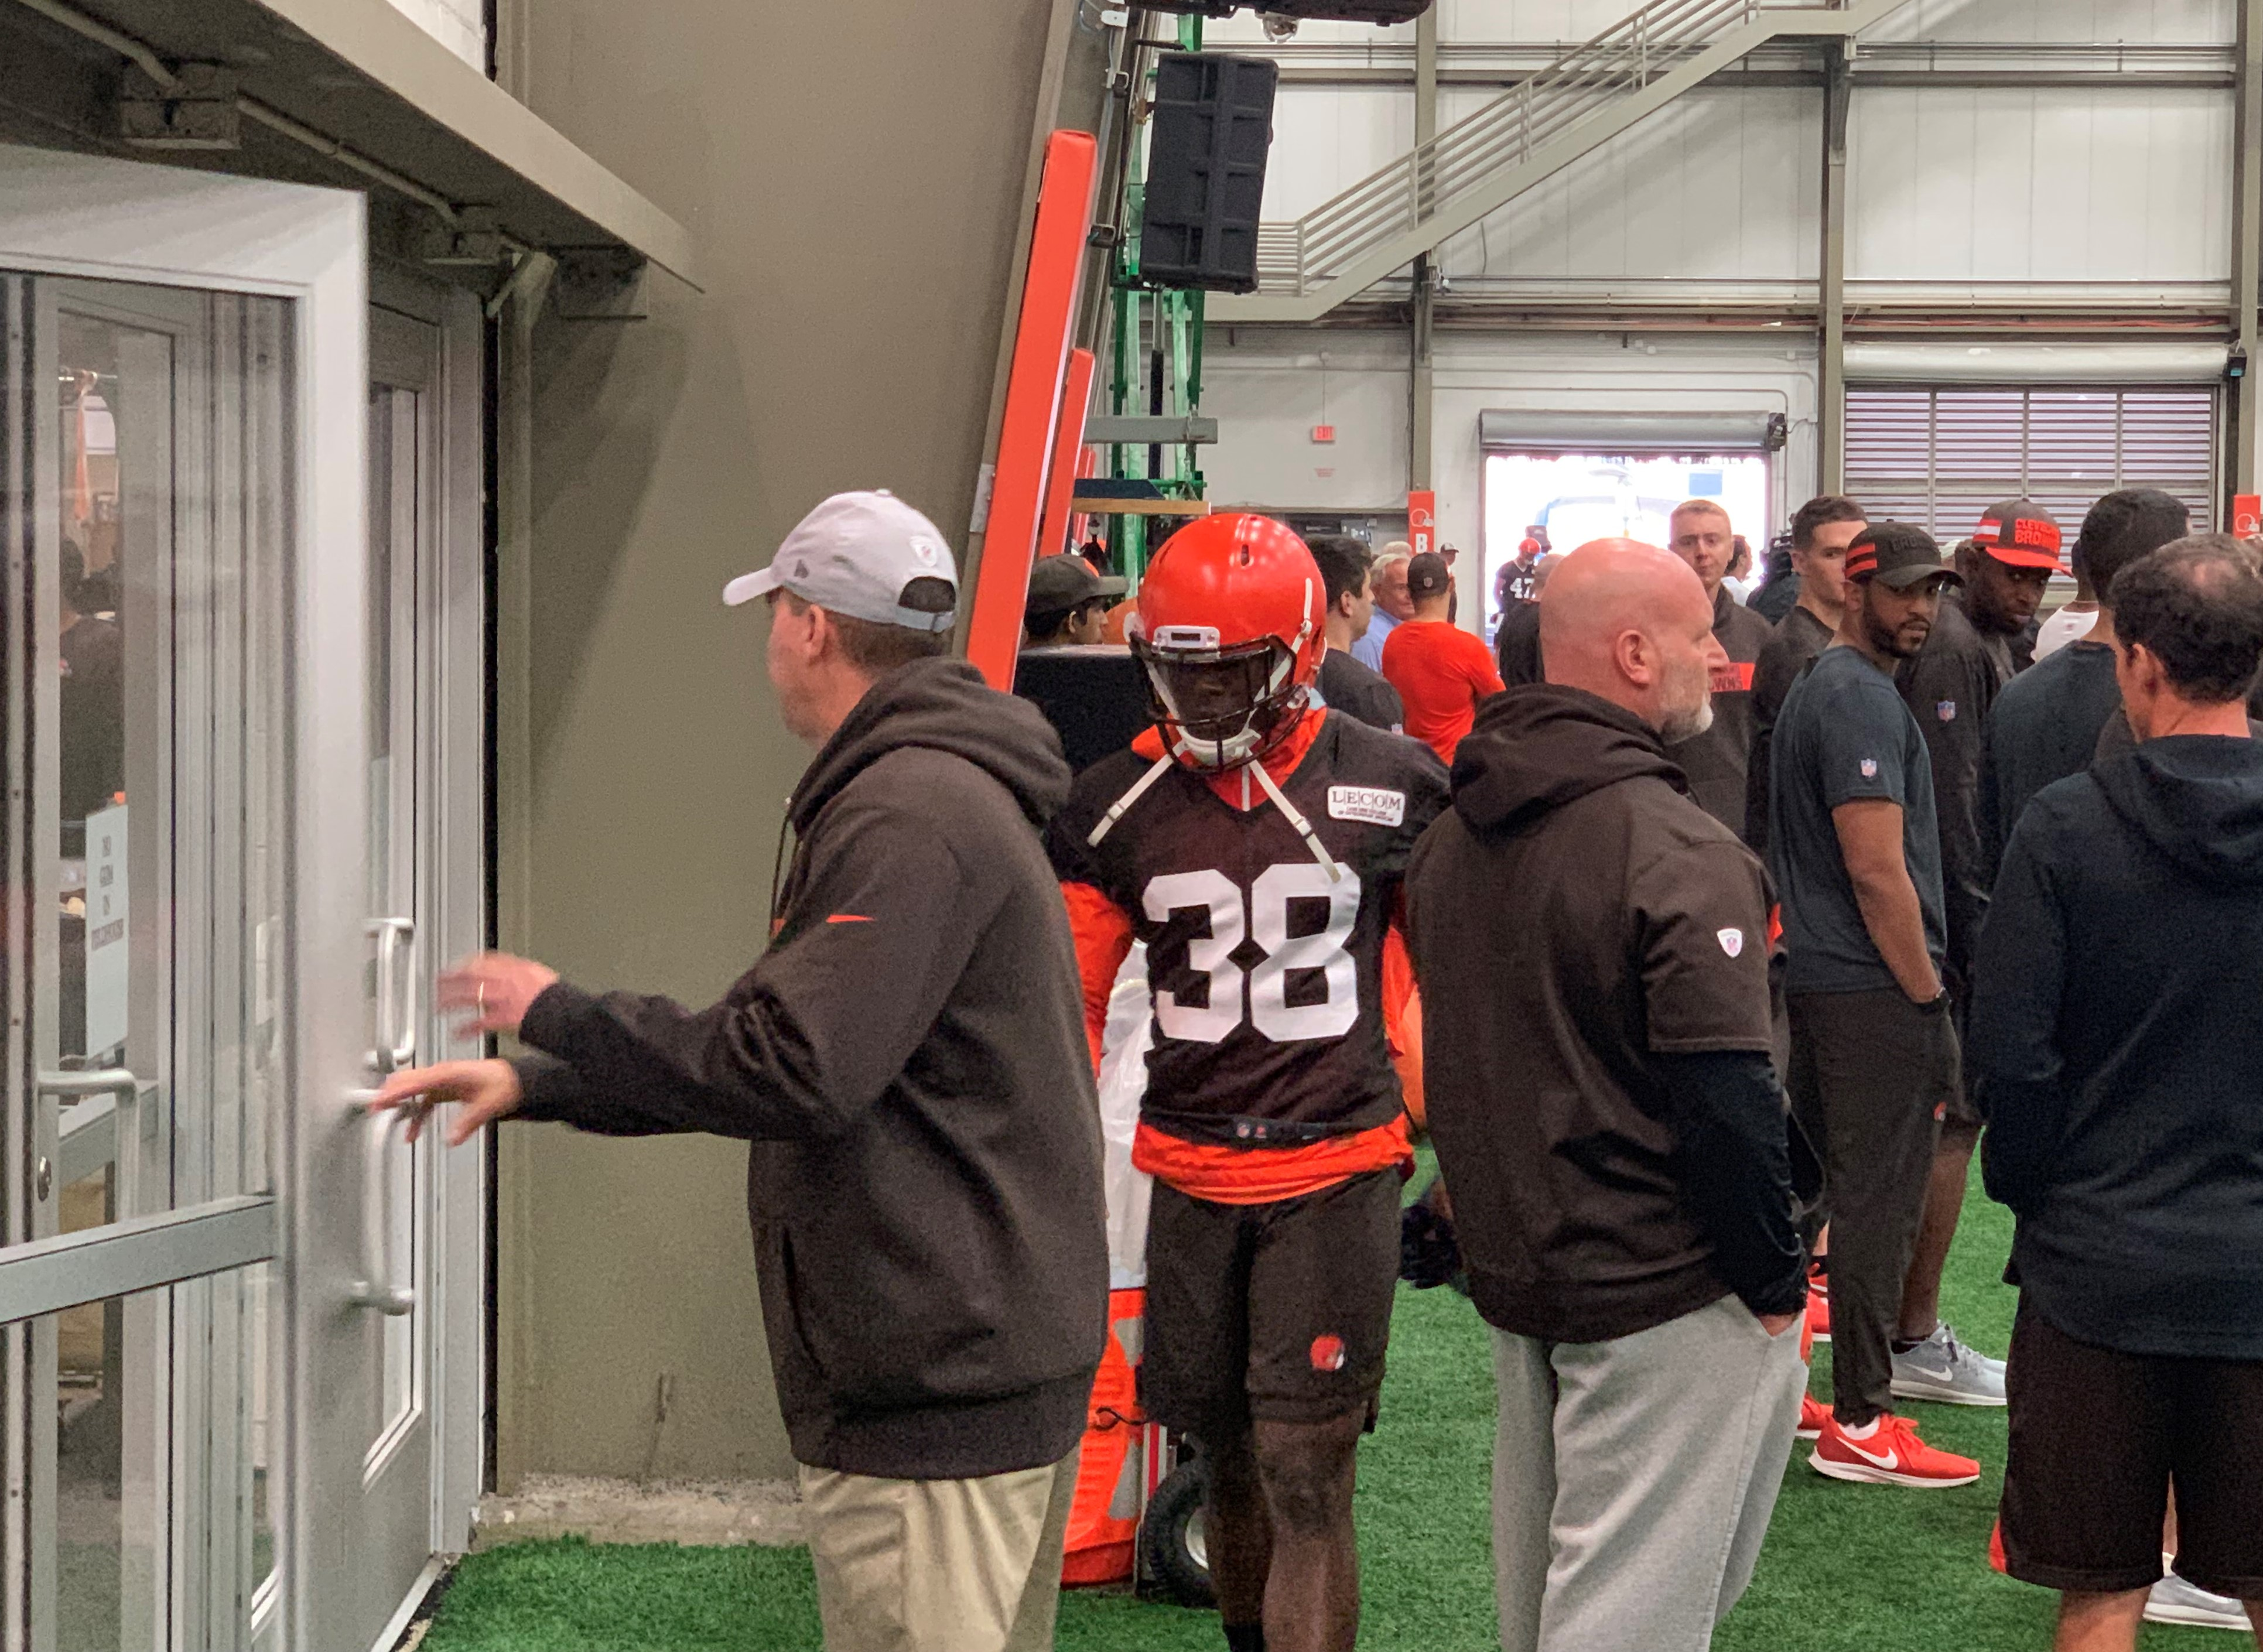 Browns minicamp notes: CB T.J. Carrie leaves Day 3 practice with